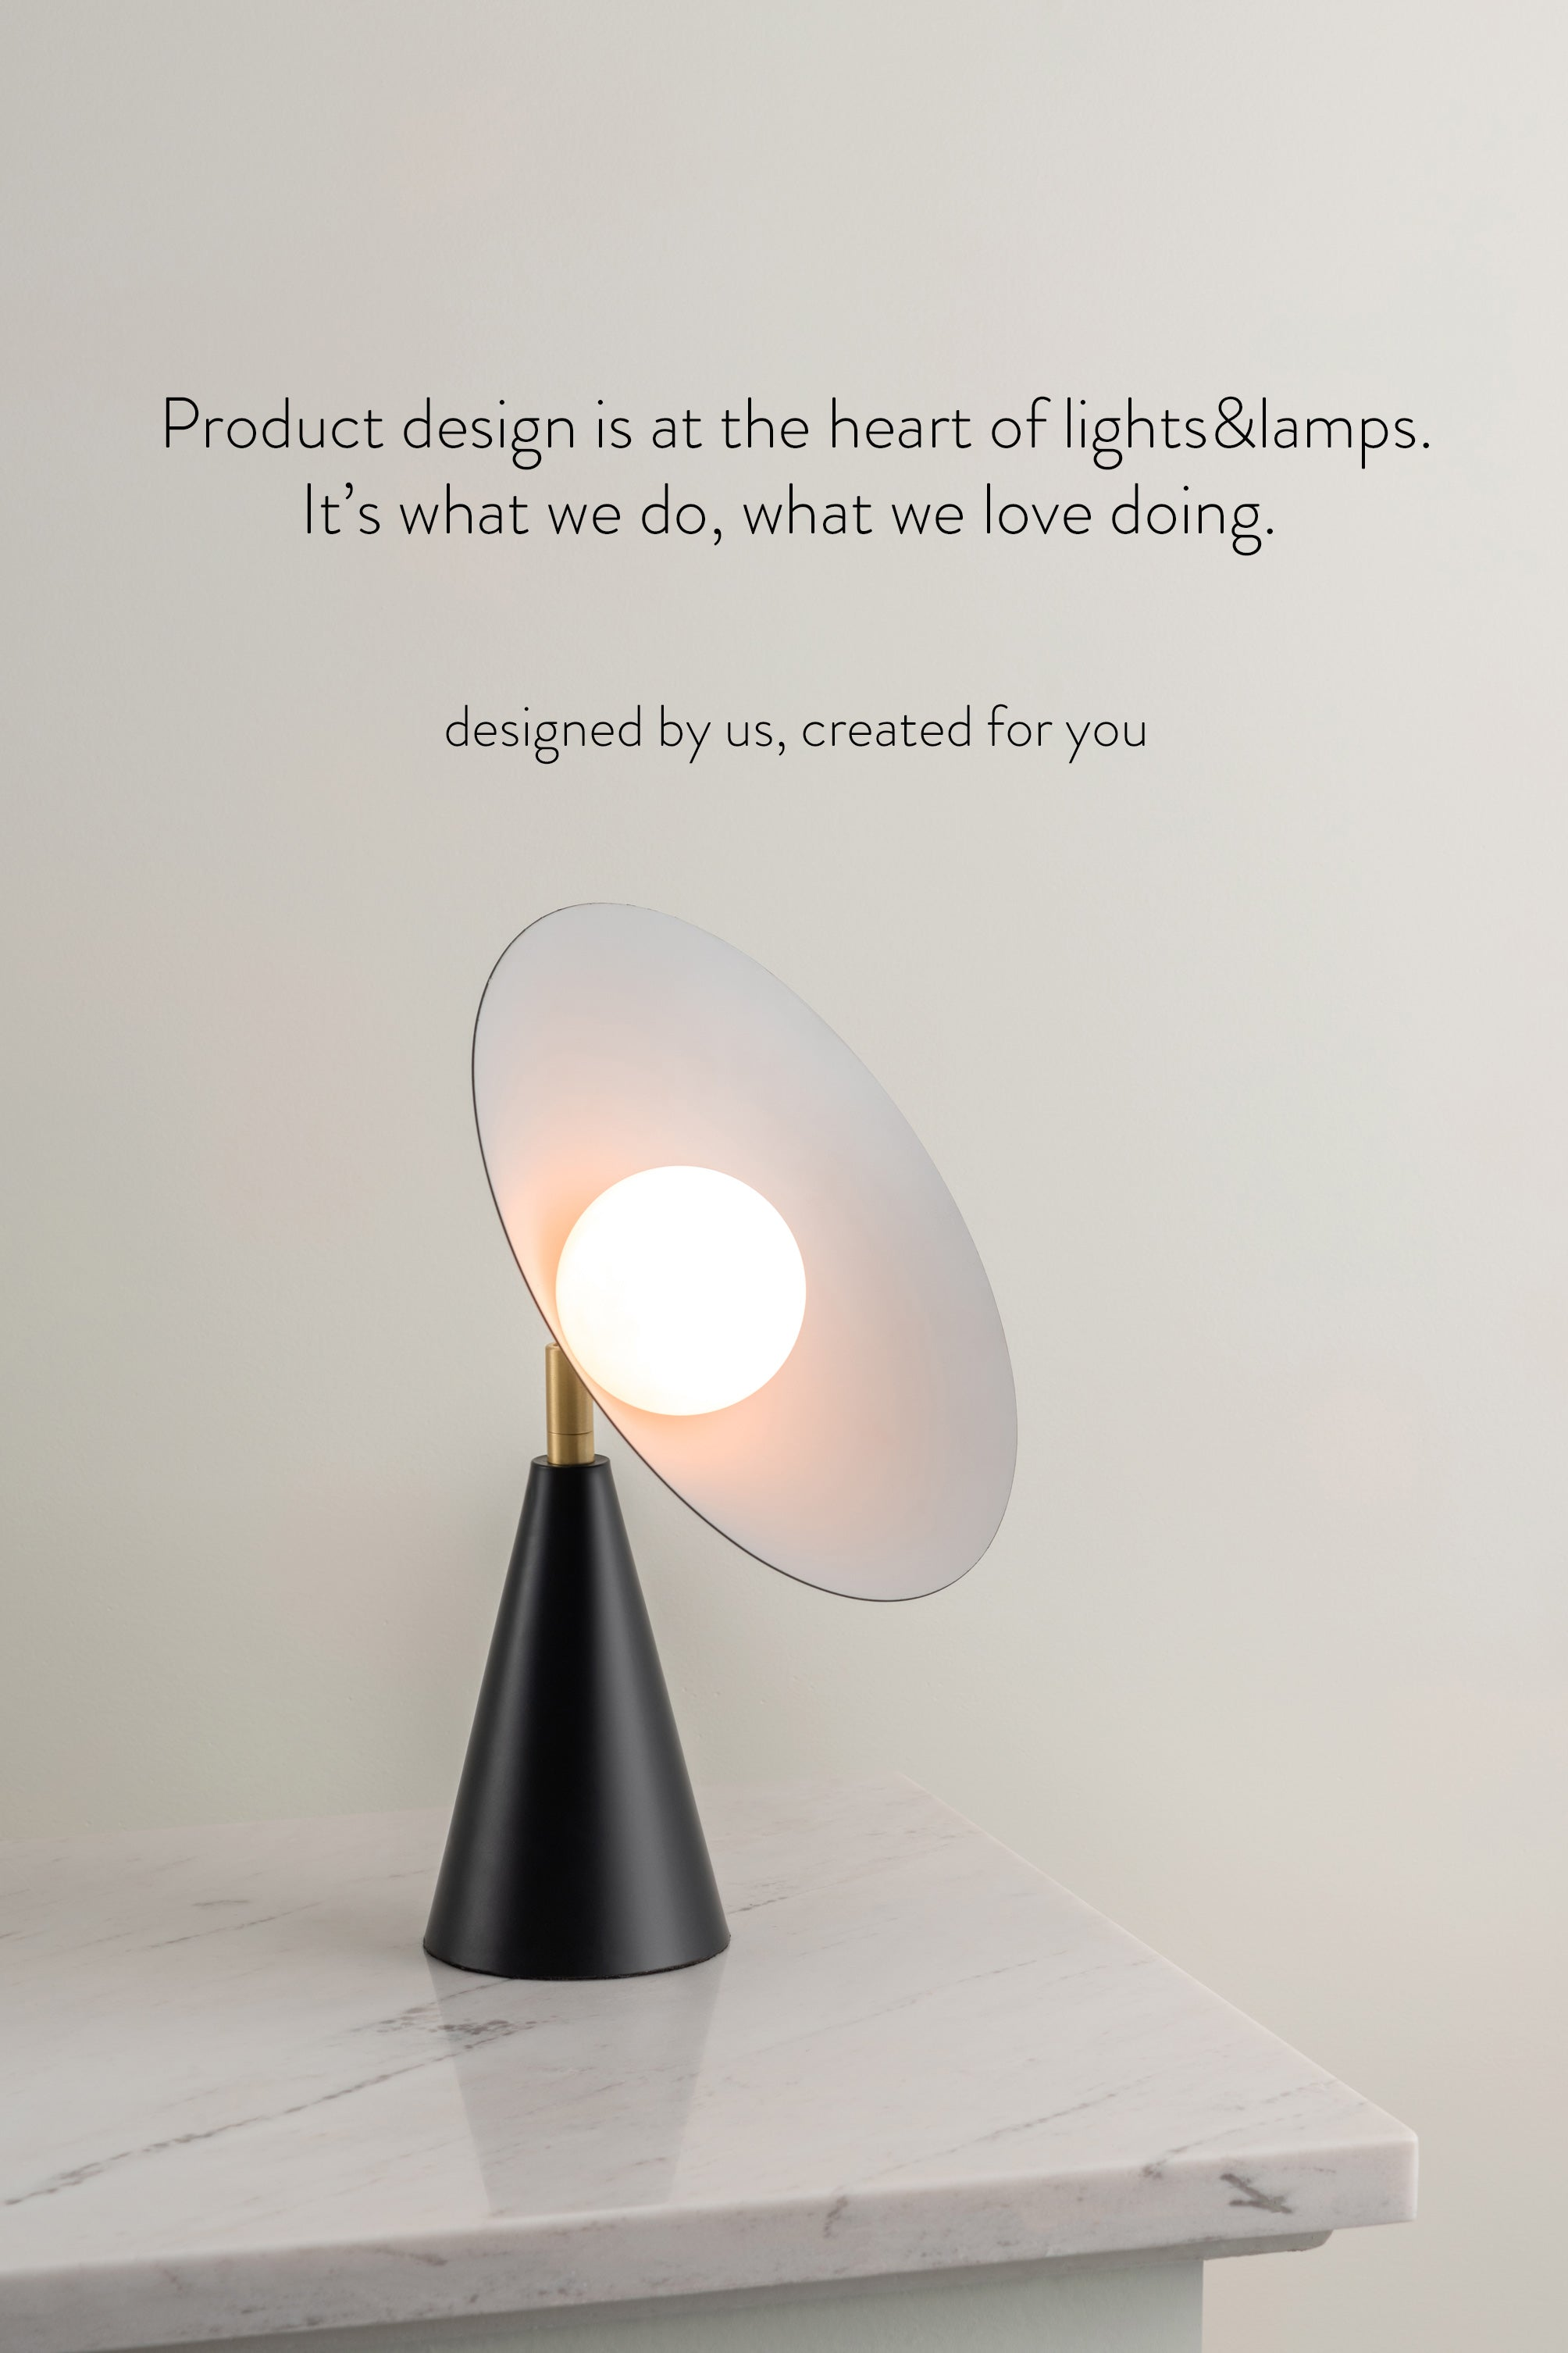 www.lightsandlamps.com - New online lighting retailer. Design led, affordable table lamps, floor lamp, ceiling and wall lights